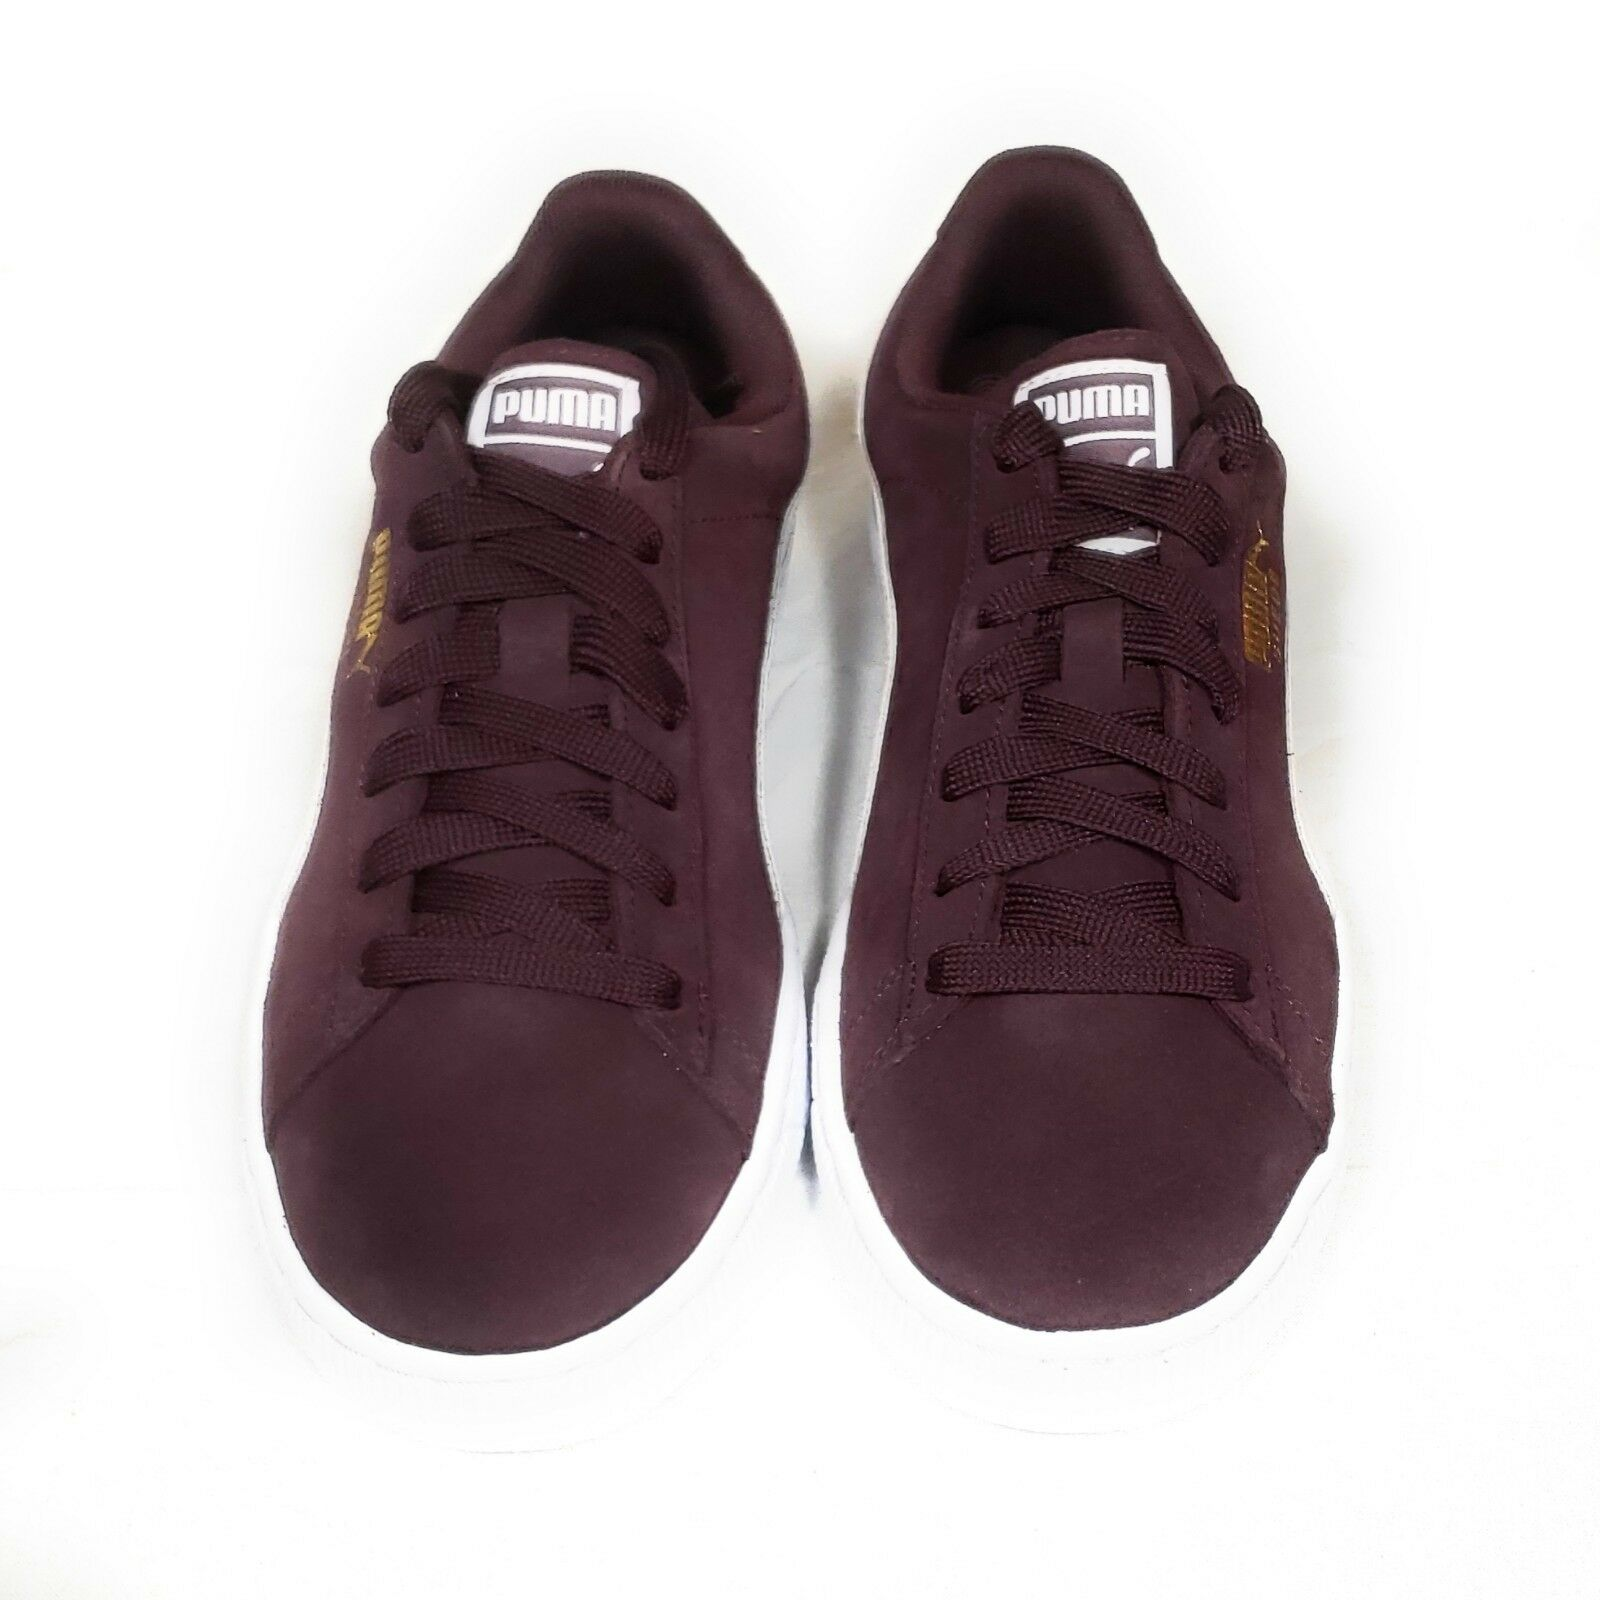 Puma Suede Classic Winetasting Burgundy Sneakers Women's 9 Men's 7.5 shoes NWT